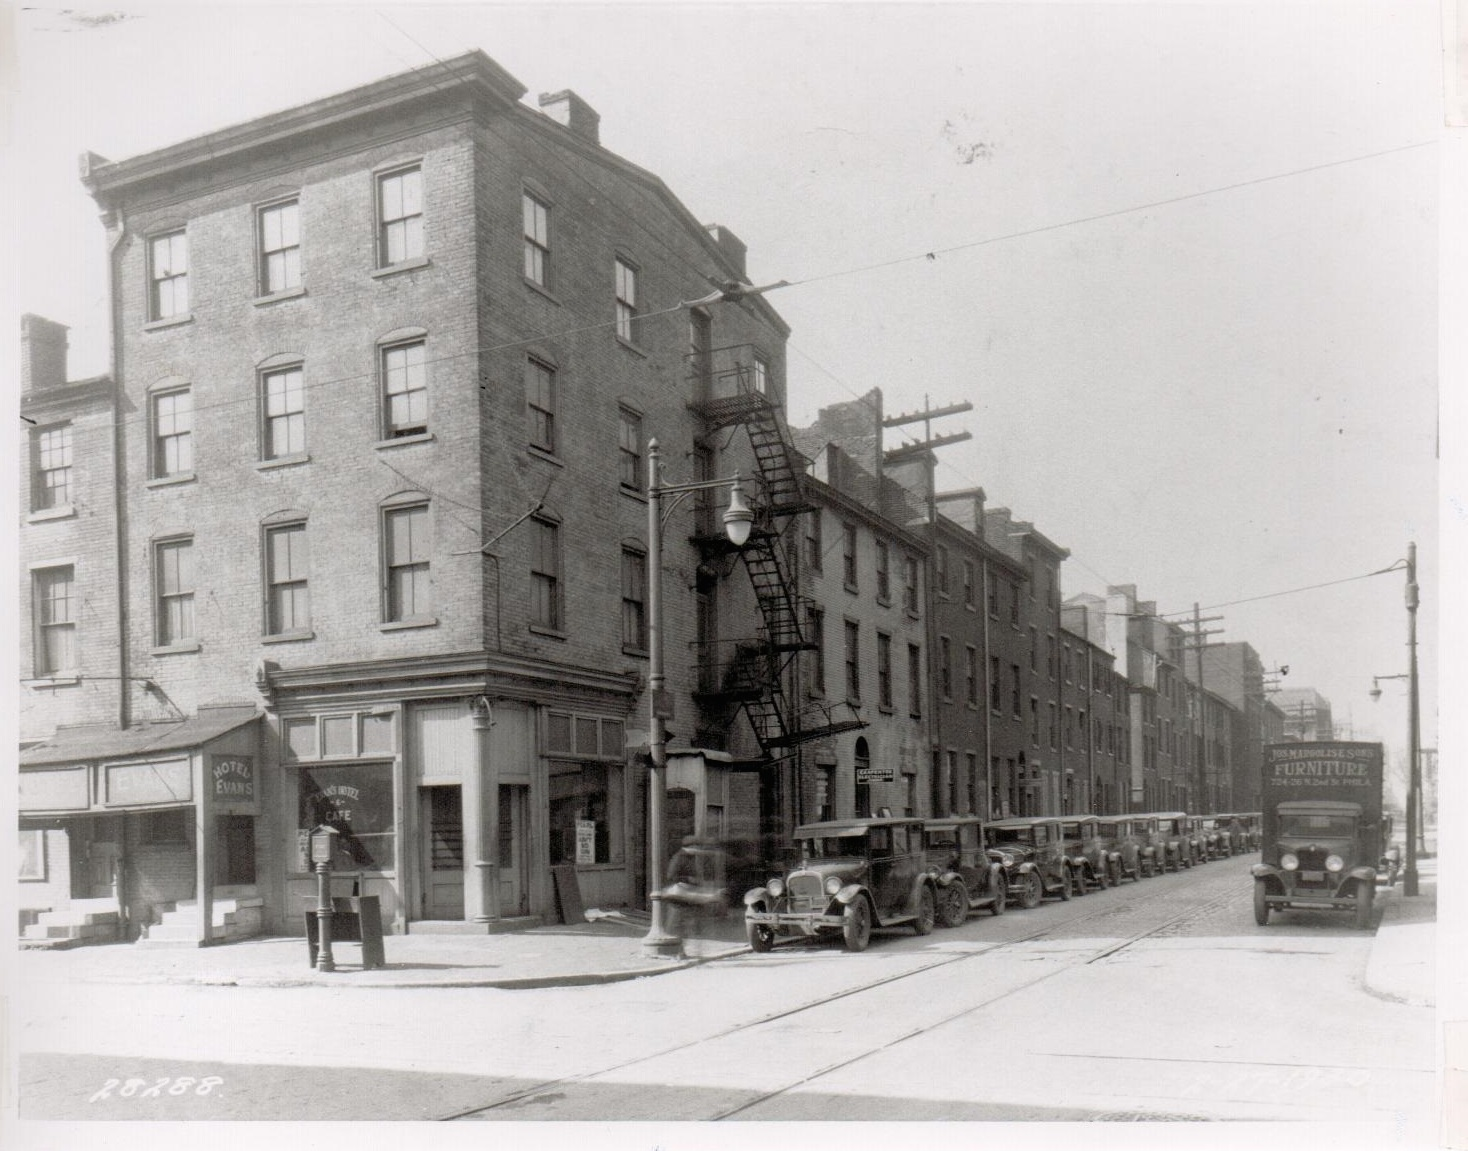 The corner of 13th and Lombard  Streets, Philadelphia, PA